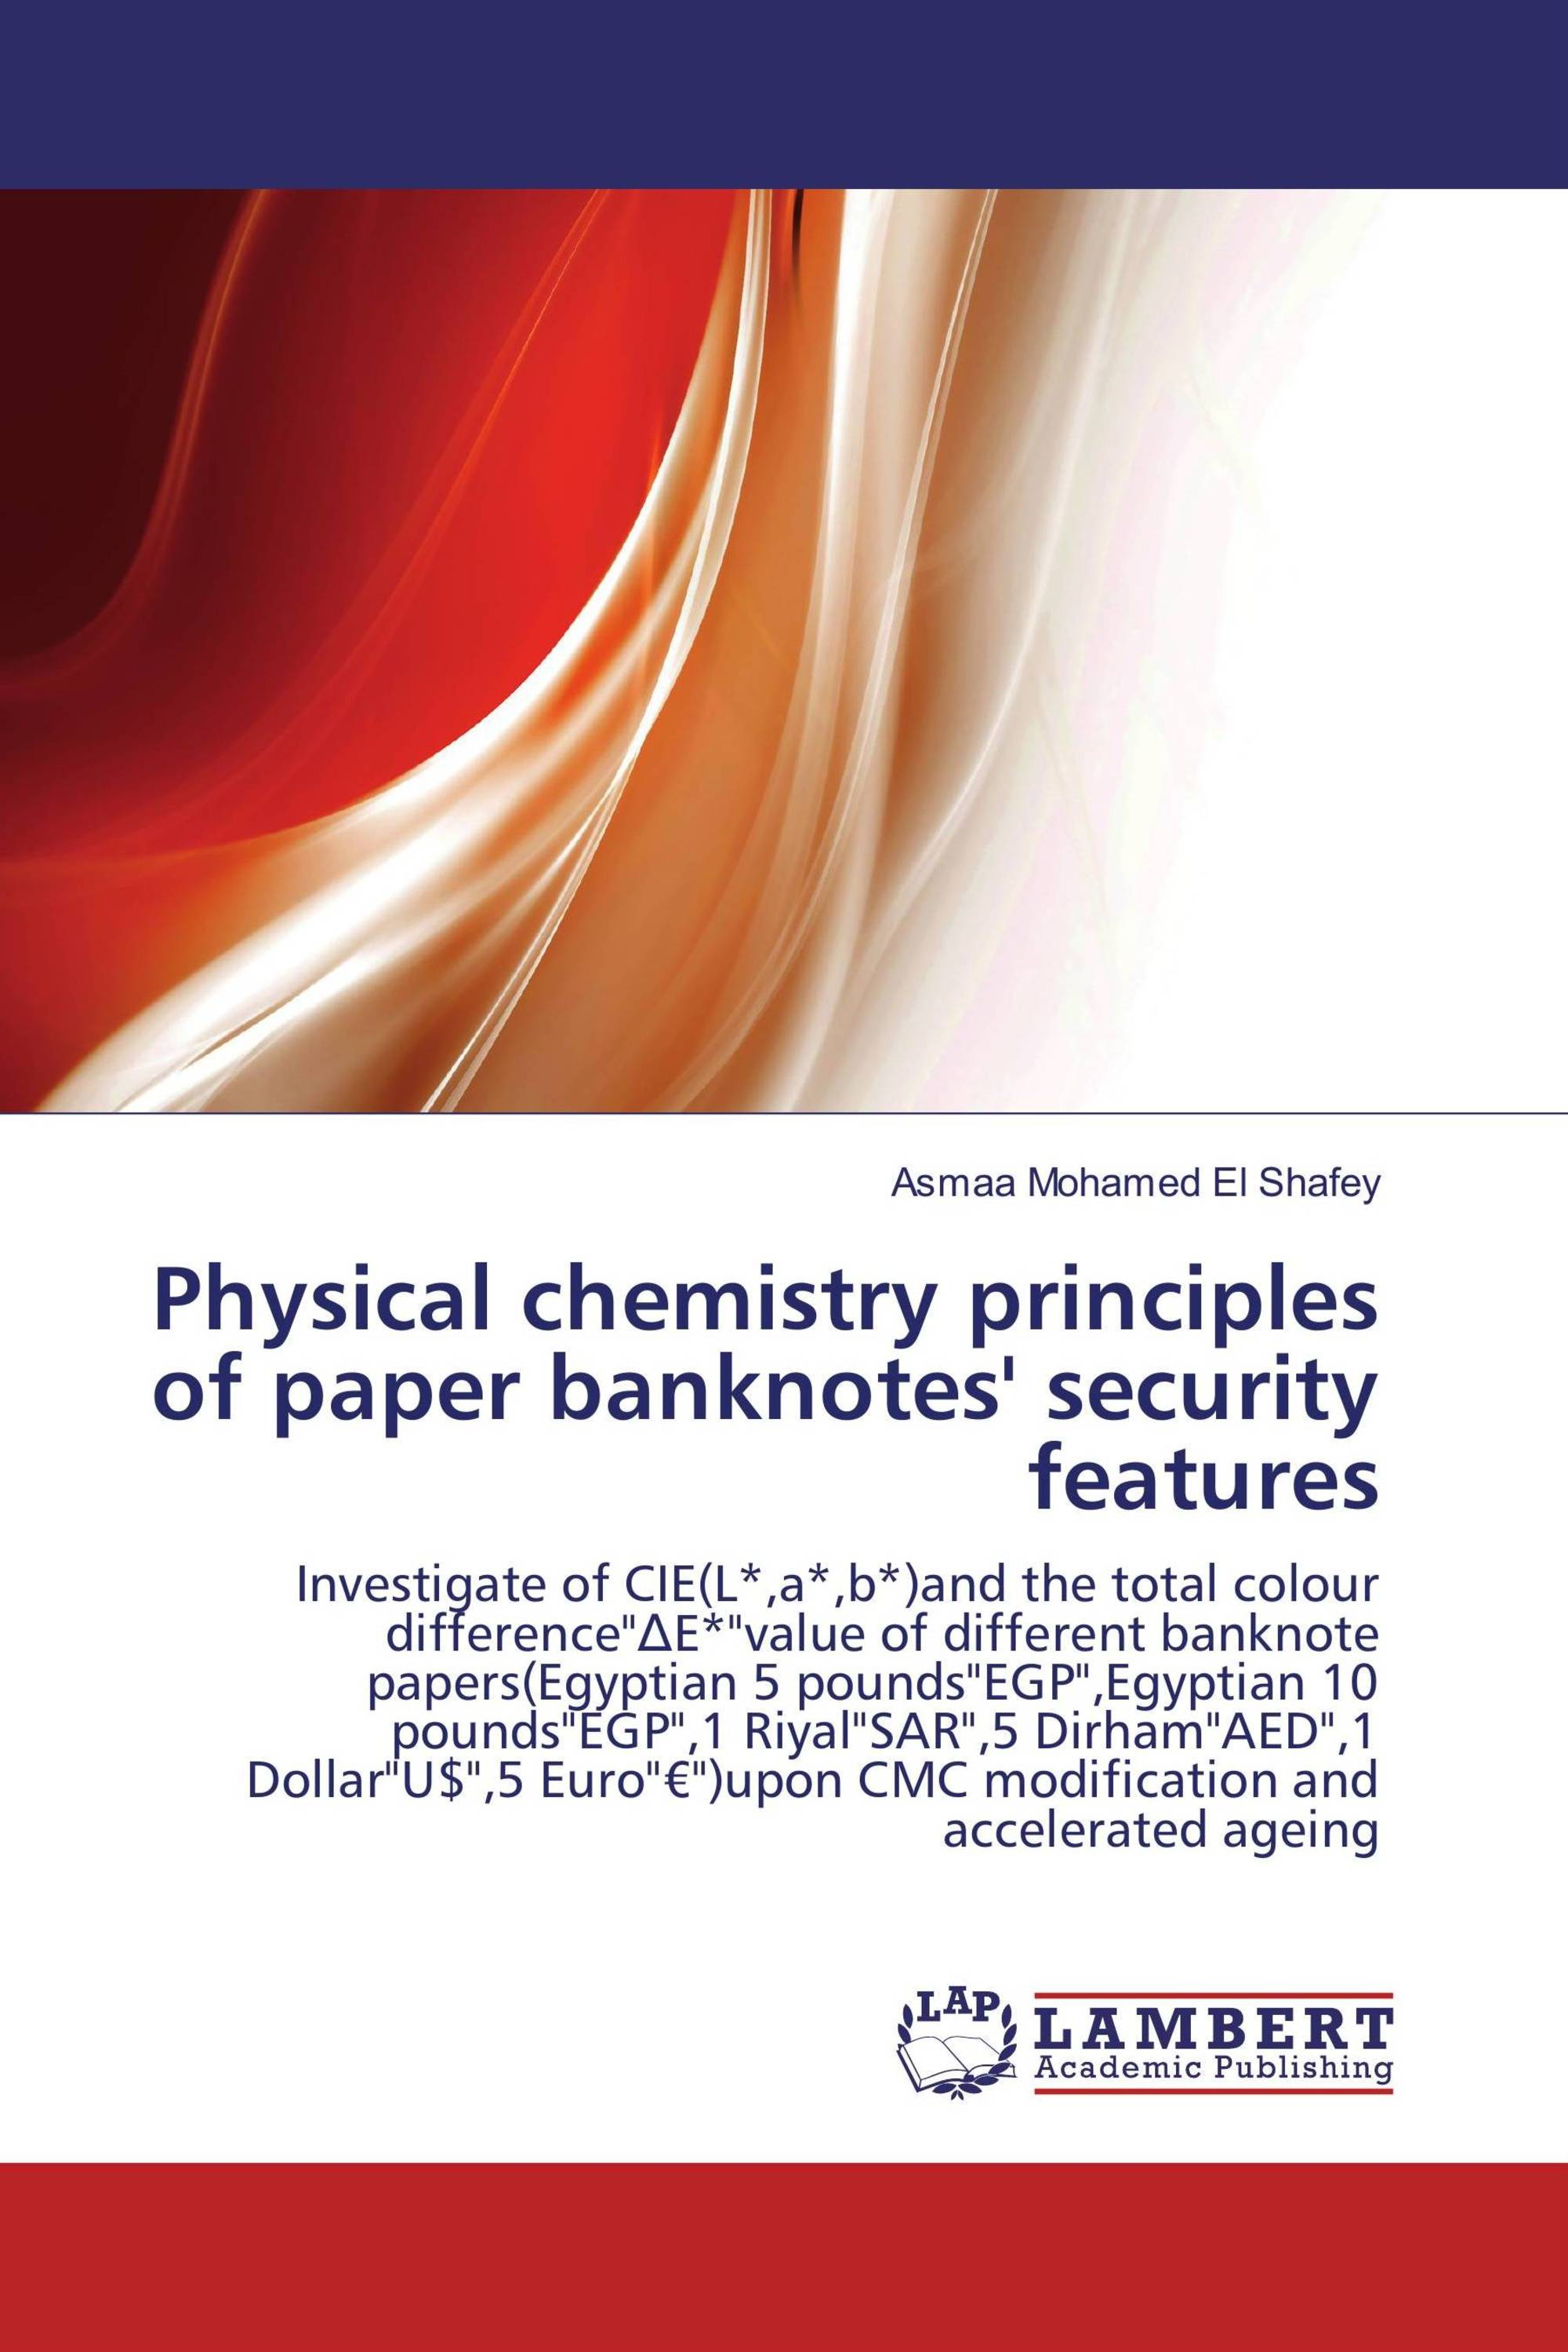 Physical chemistry principles of paper banknotes' security features